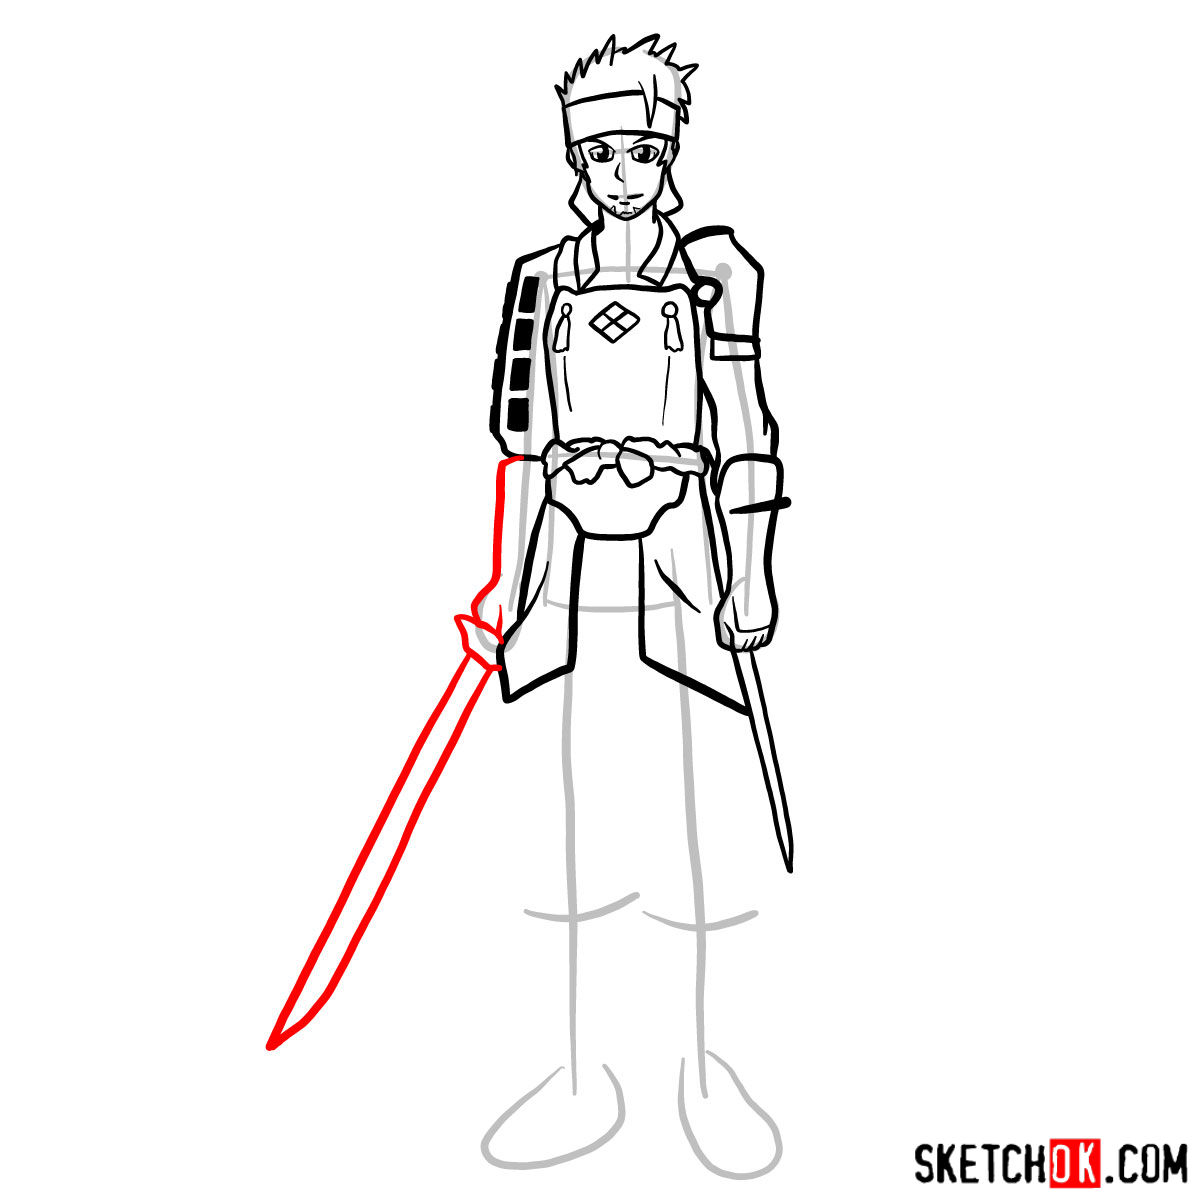 How to draw Klein from Sword Art Online - step 12